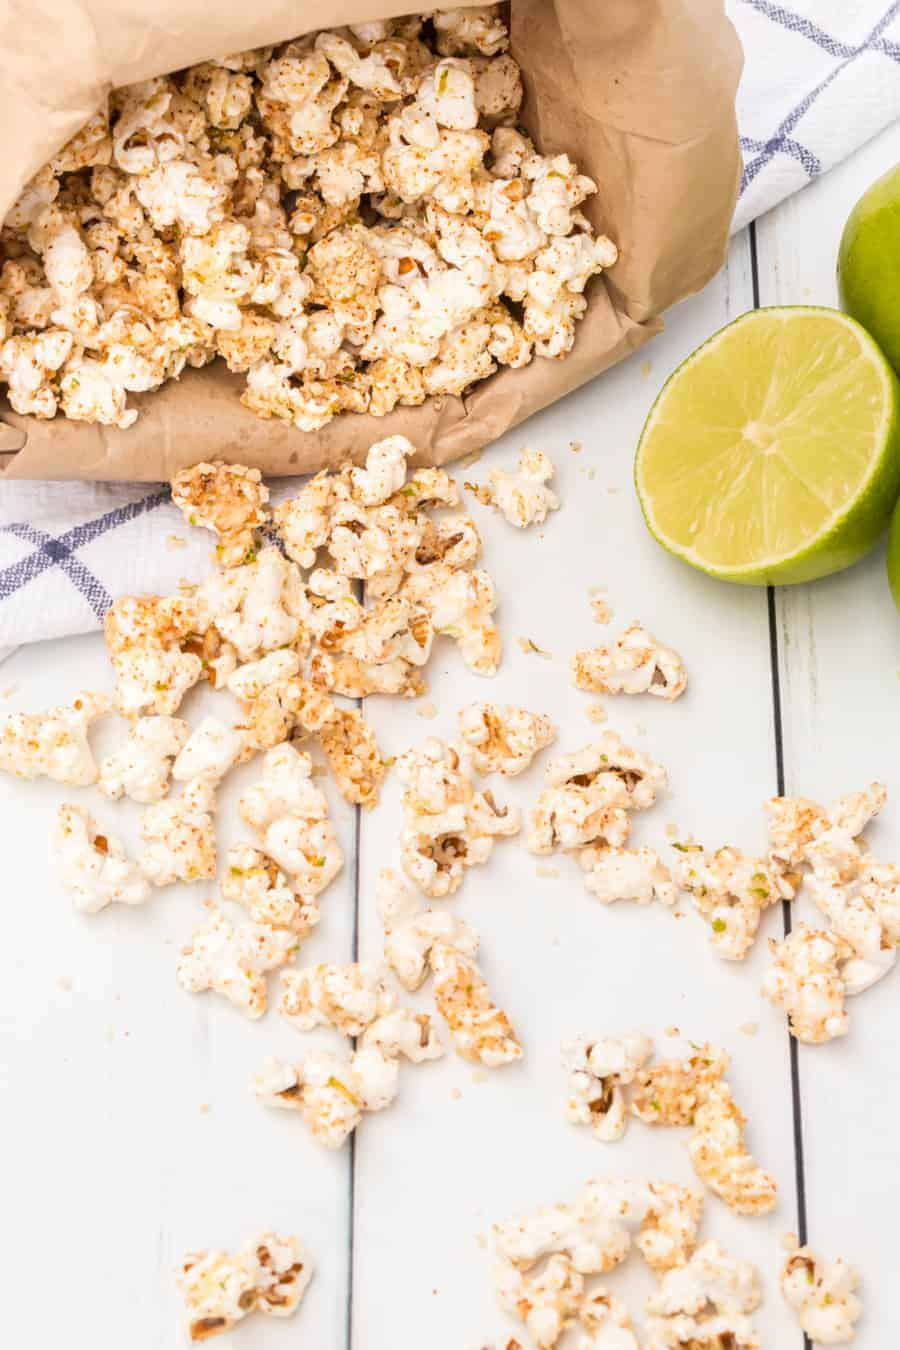 Quick and easy cheesy chili lime popcorn made with fresh popcorn, butter, cotija cheese, and chili powder make one tasty and simple snack. #popcorn #popcornrecipes #savorypopcorn #limepopcorn